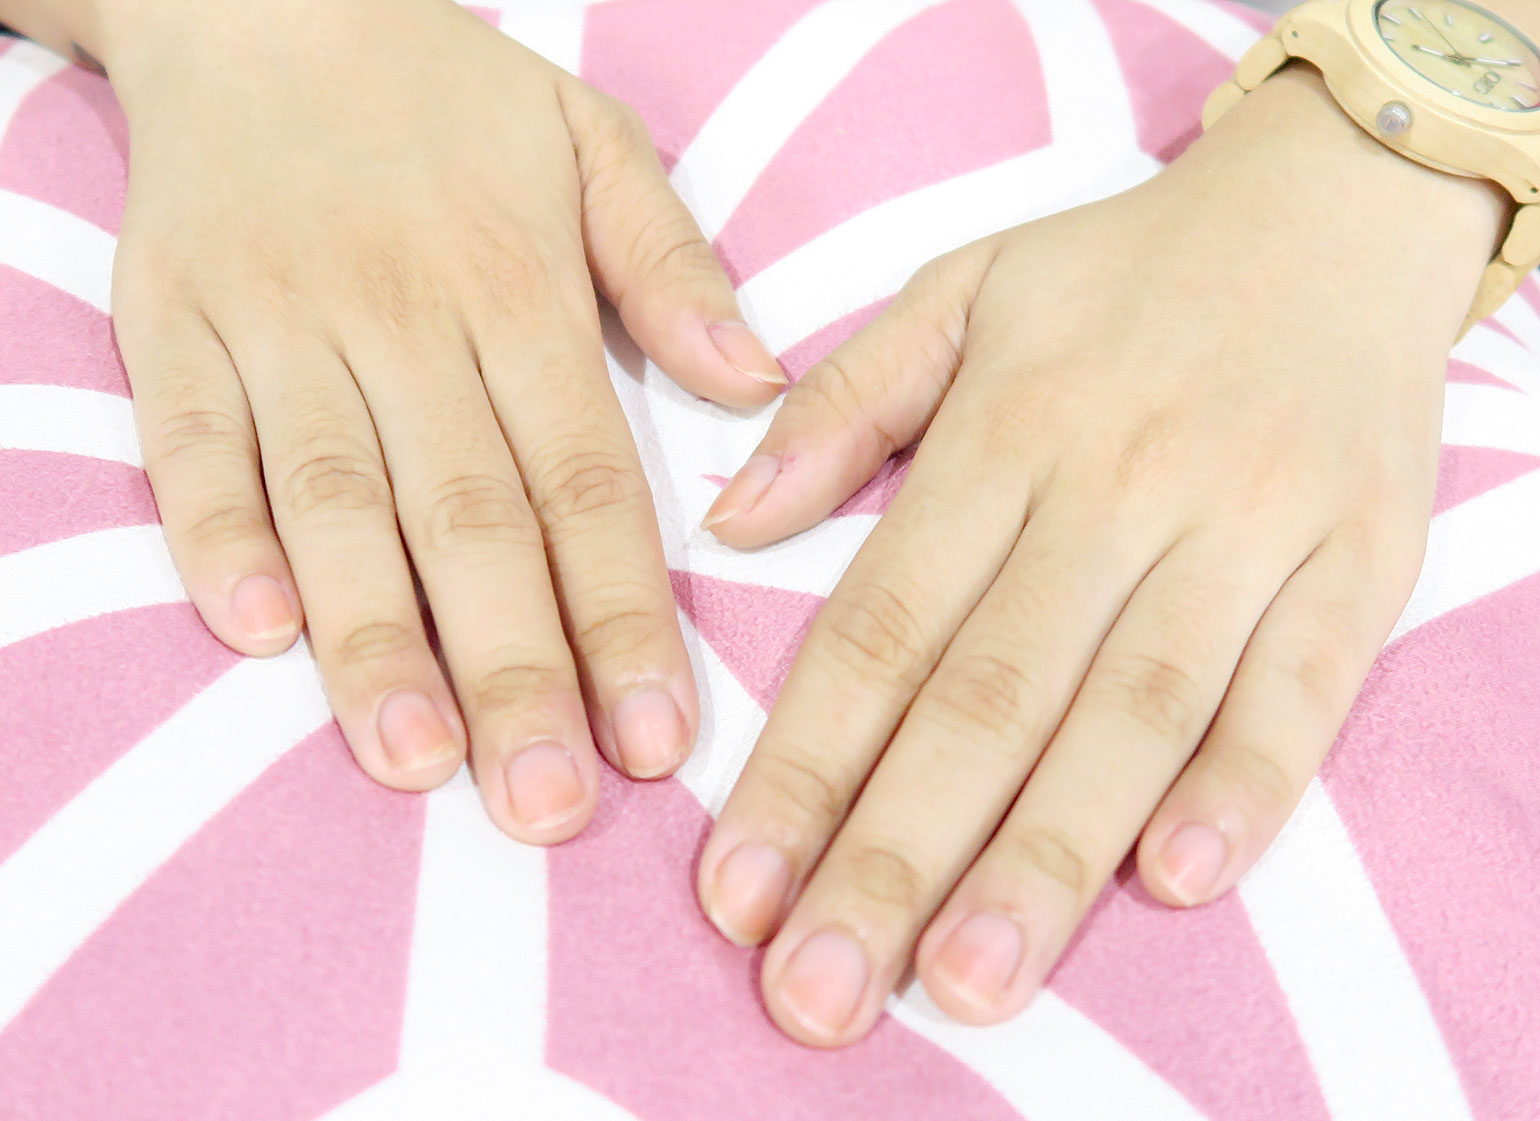 1.1 Acrylic Nails Review - Nail Art - Ayumi Las Piñas - Gen-zel.com(c)